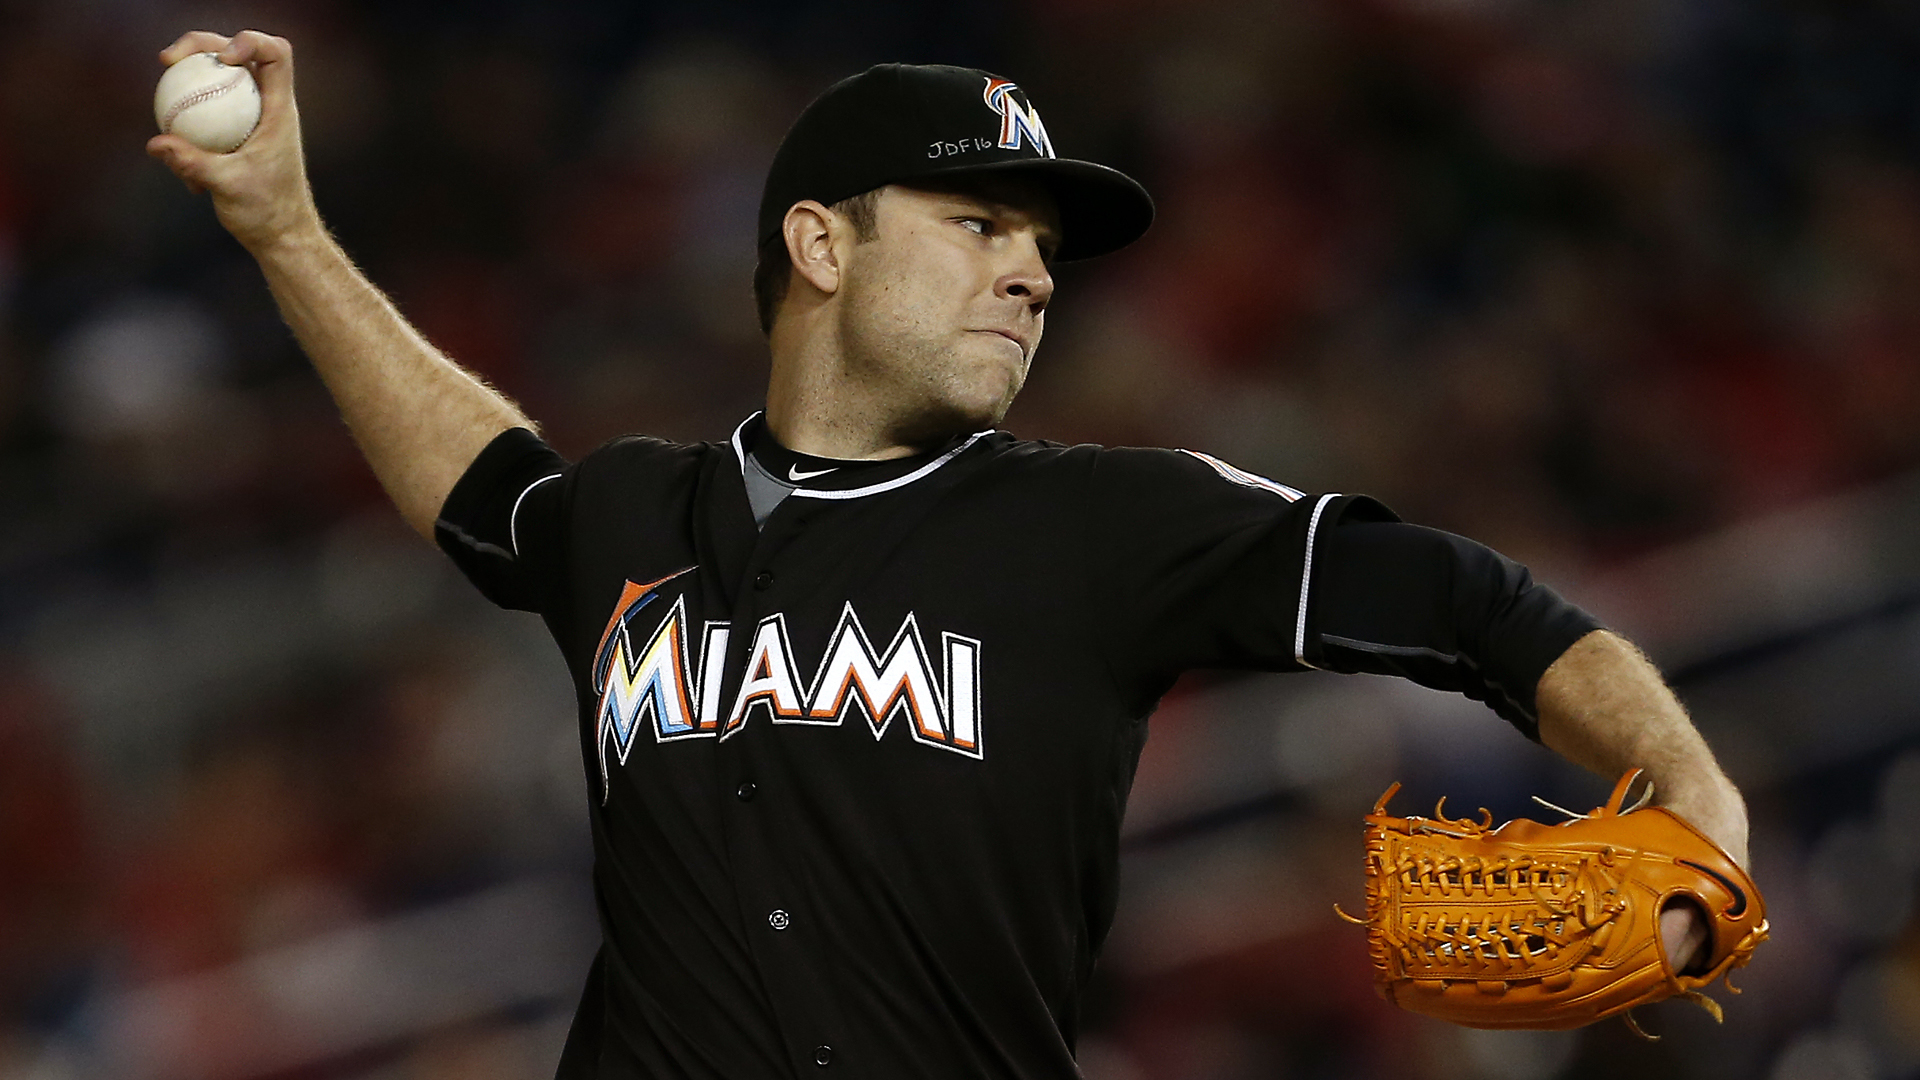 Mariners acquire RP Phelps from Marlins